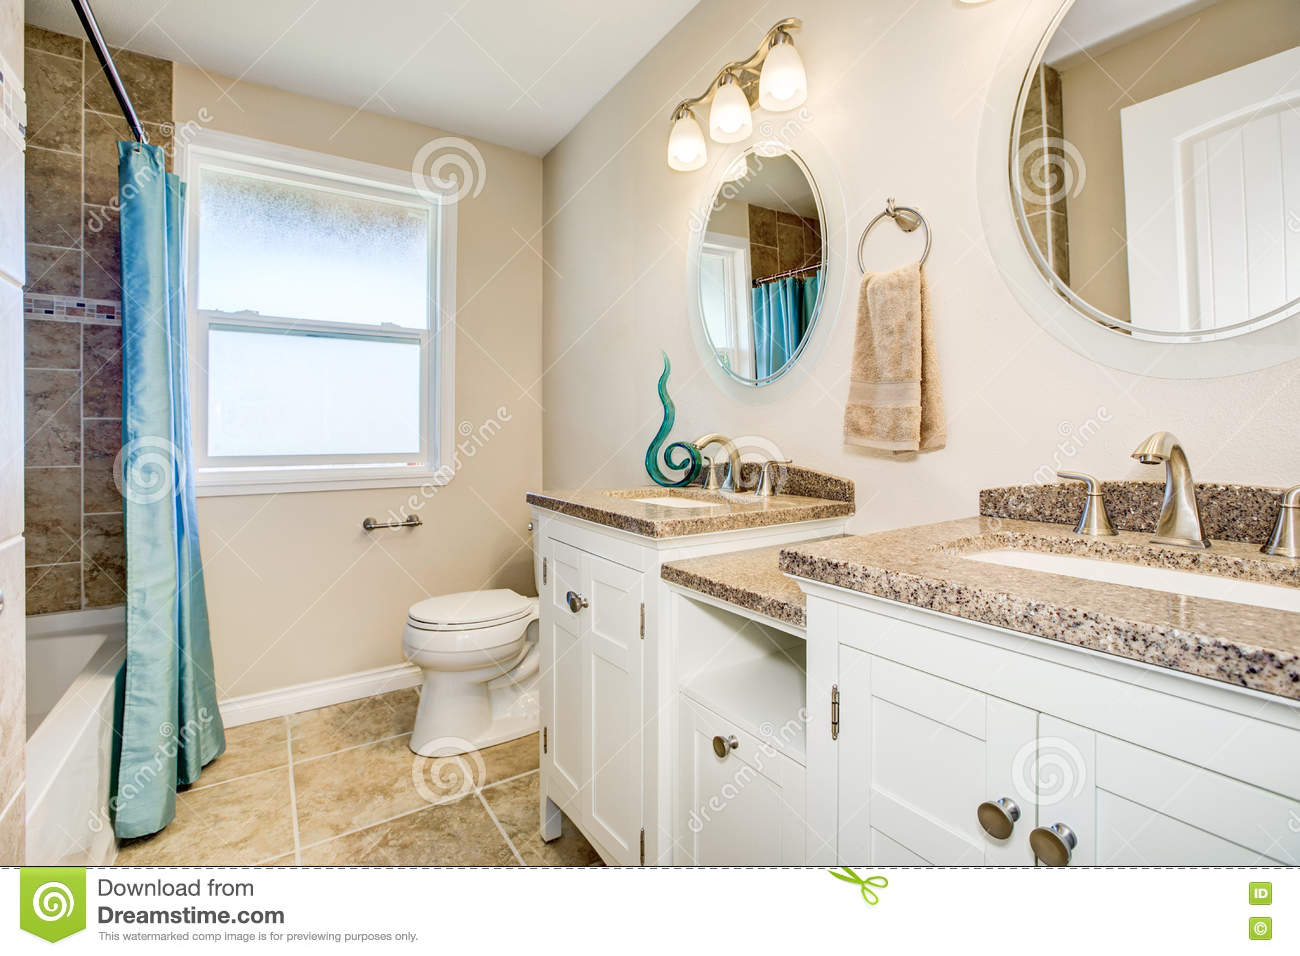 Bathroom Detail Vanity Cabinet With A Shower Stock Image Image Of Style Simple 79976517